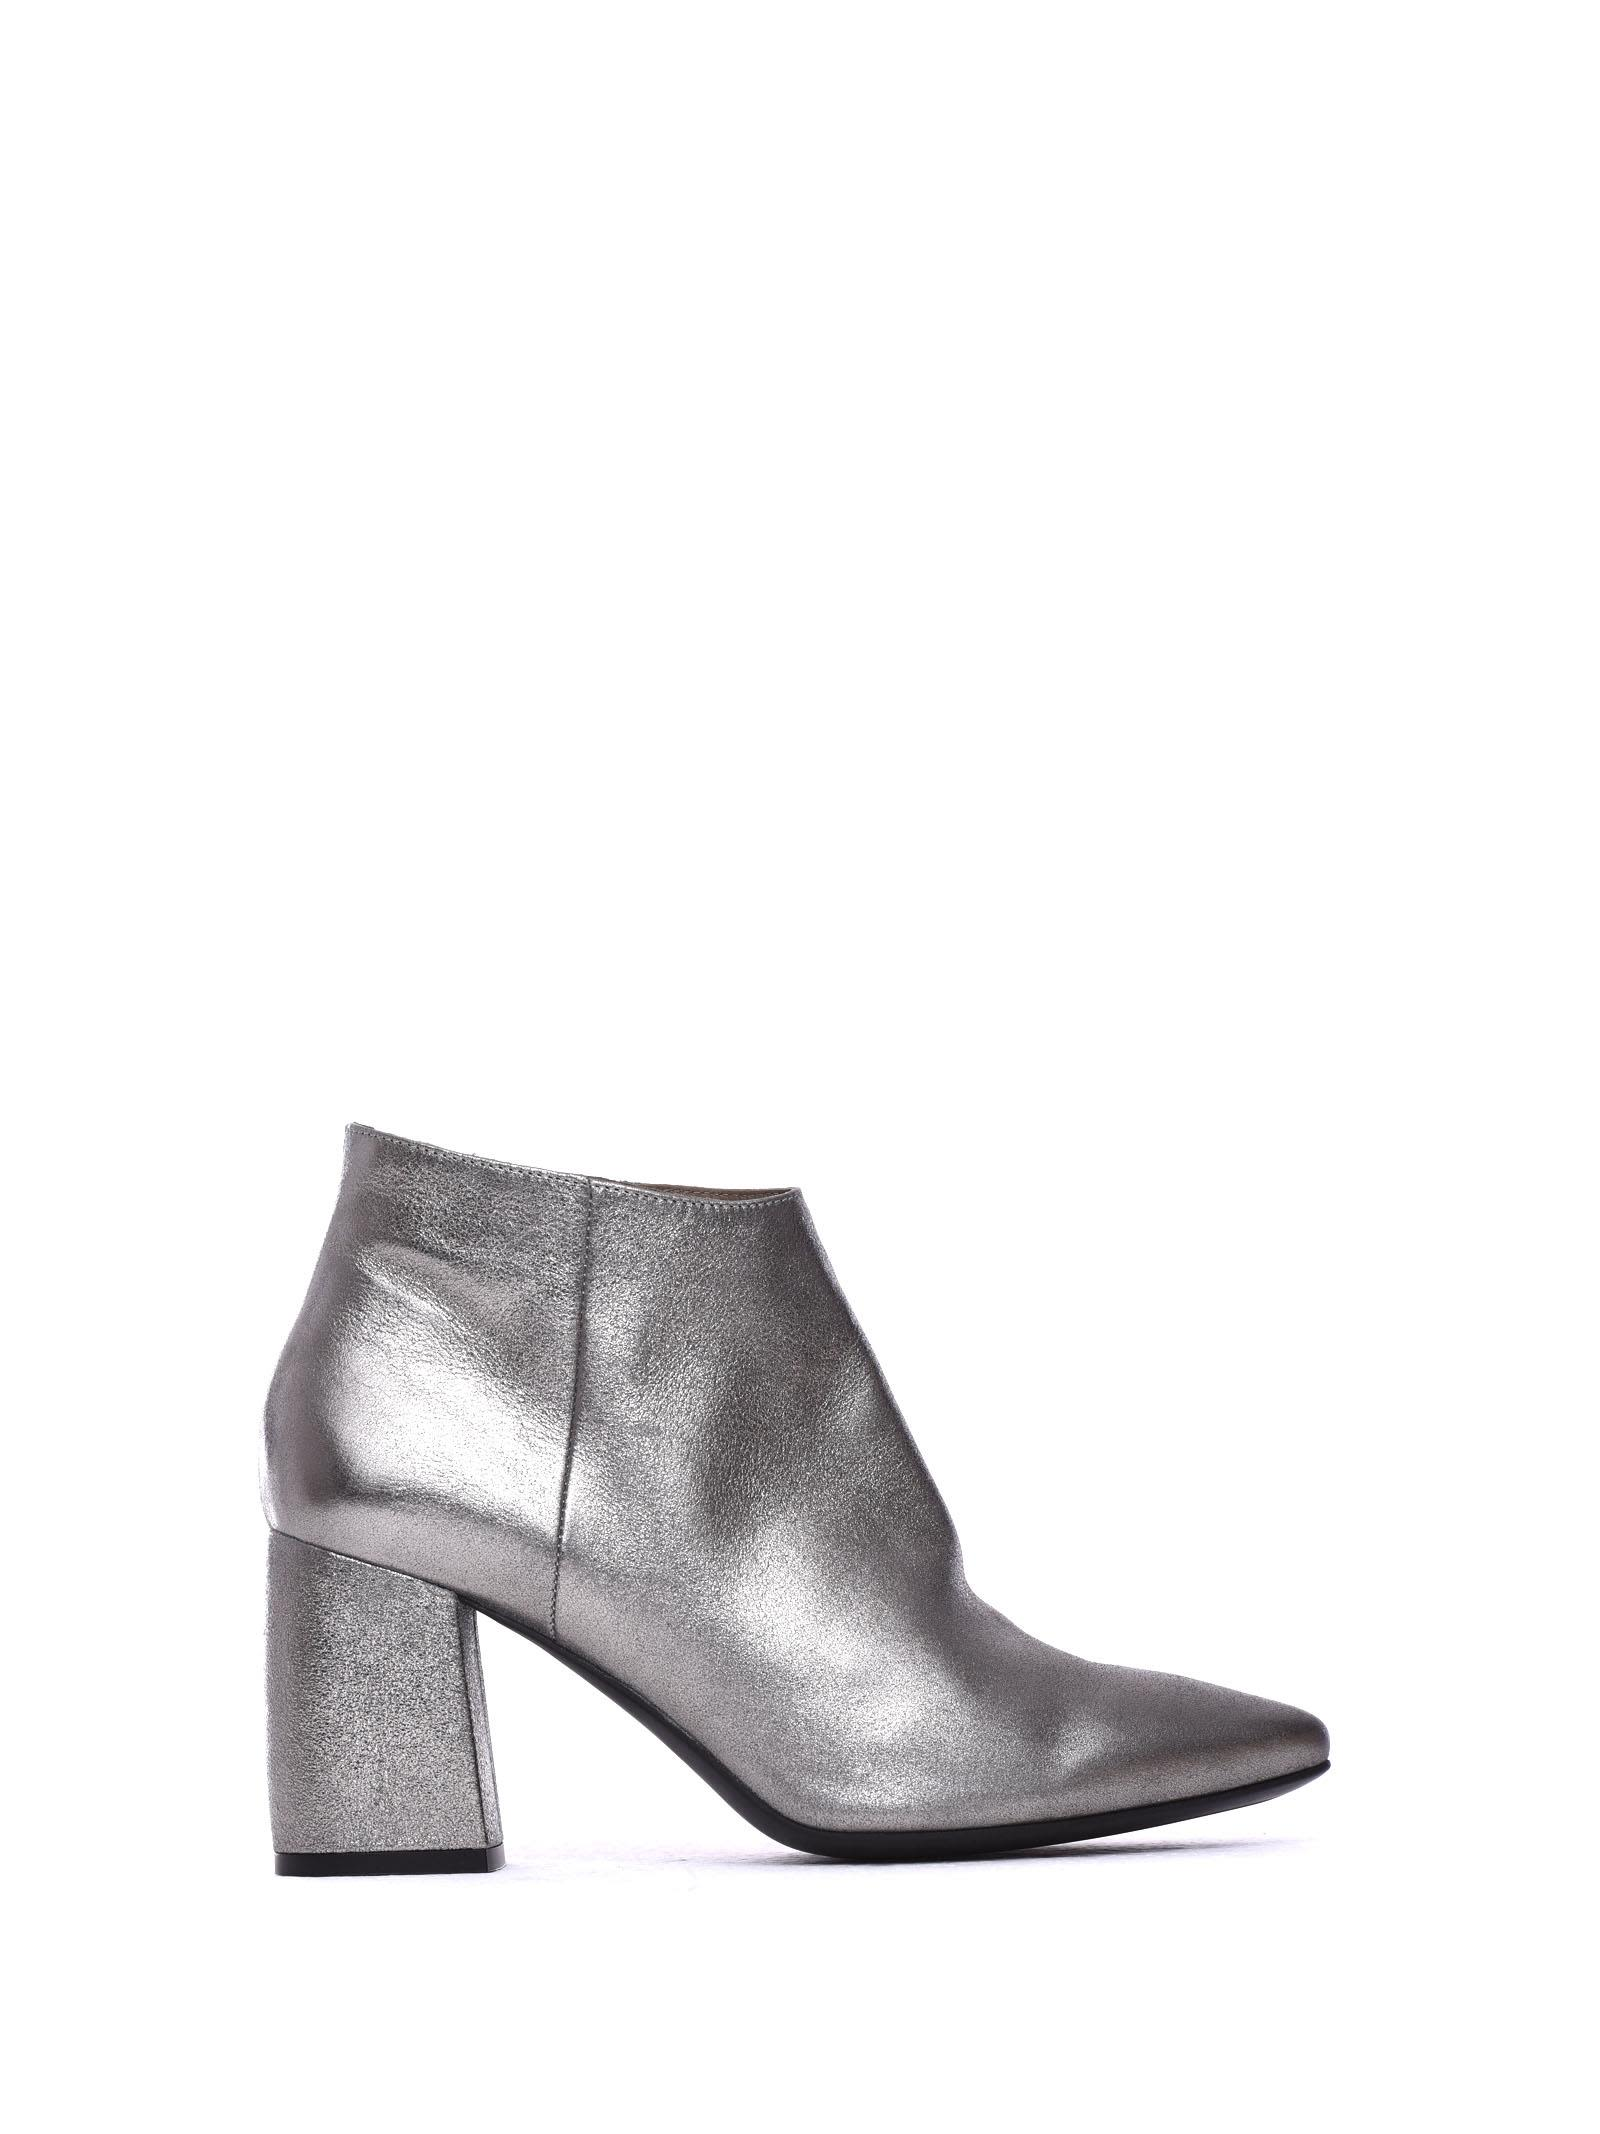 JANET & JANET Meg Silver Ankle Boots in Argento